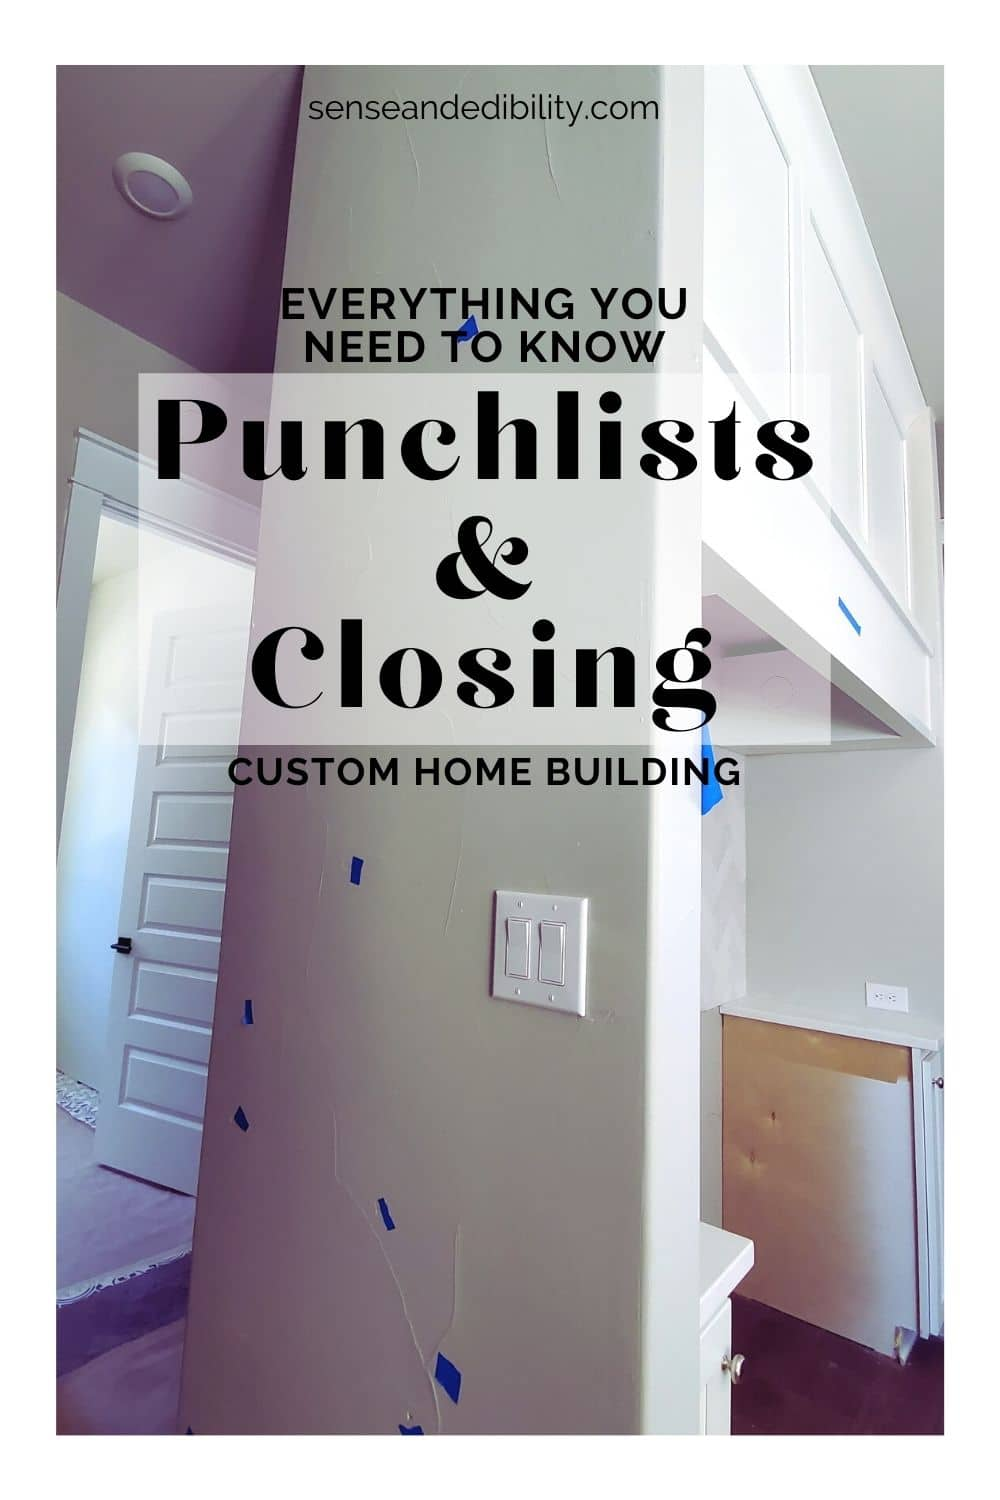 Punch Lists and Closing may be the most tedious part of your custom home build, but it's also one of the most important. Here's what you need to know about this part of the journey. #homebuild #homebuildseries #buildingacustomhome #customhome #realestate #homebuilder #build #home #foreverhome #buildingahouse #punchlists #closing  via @ediblesense